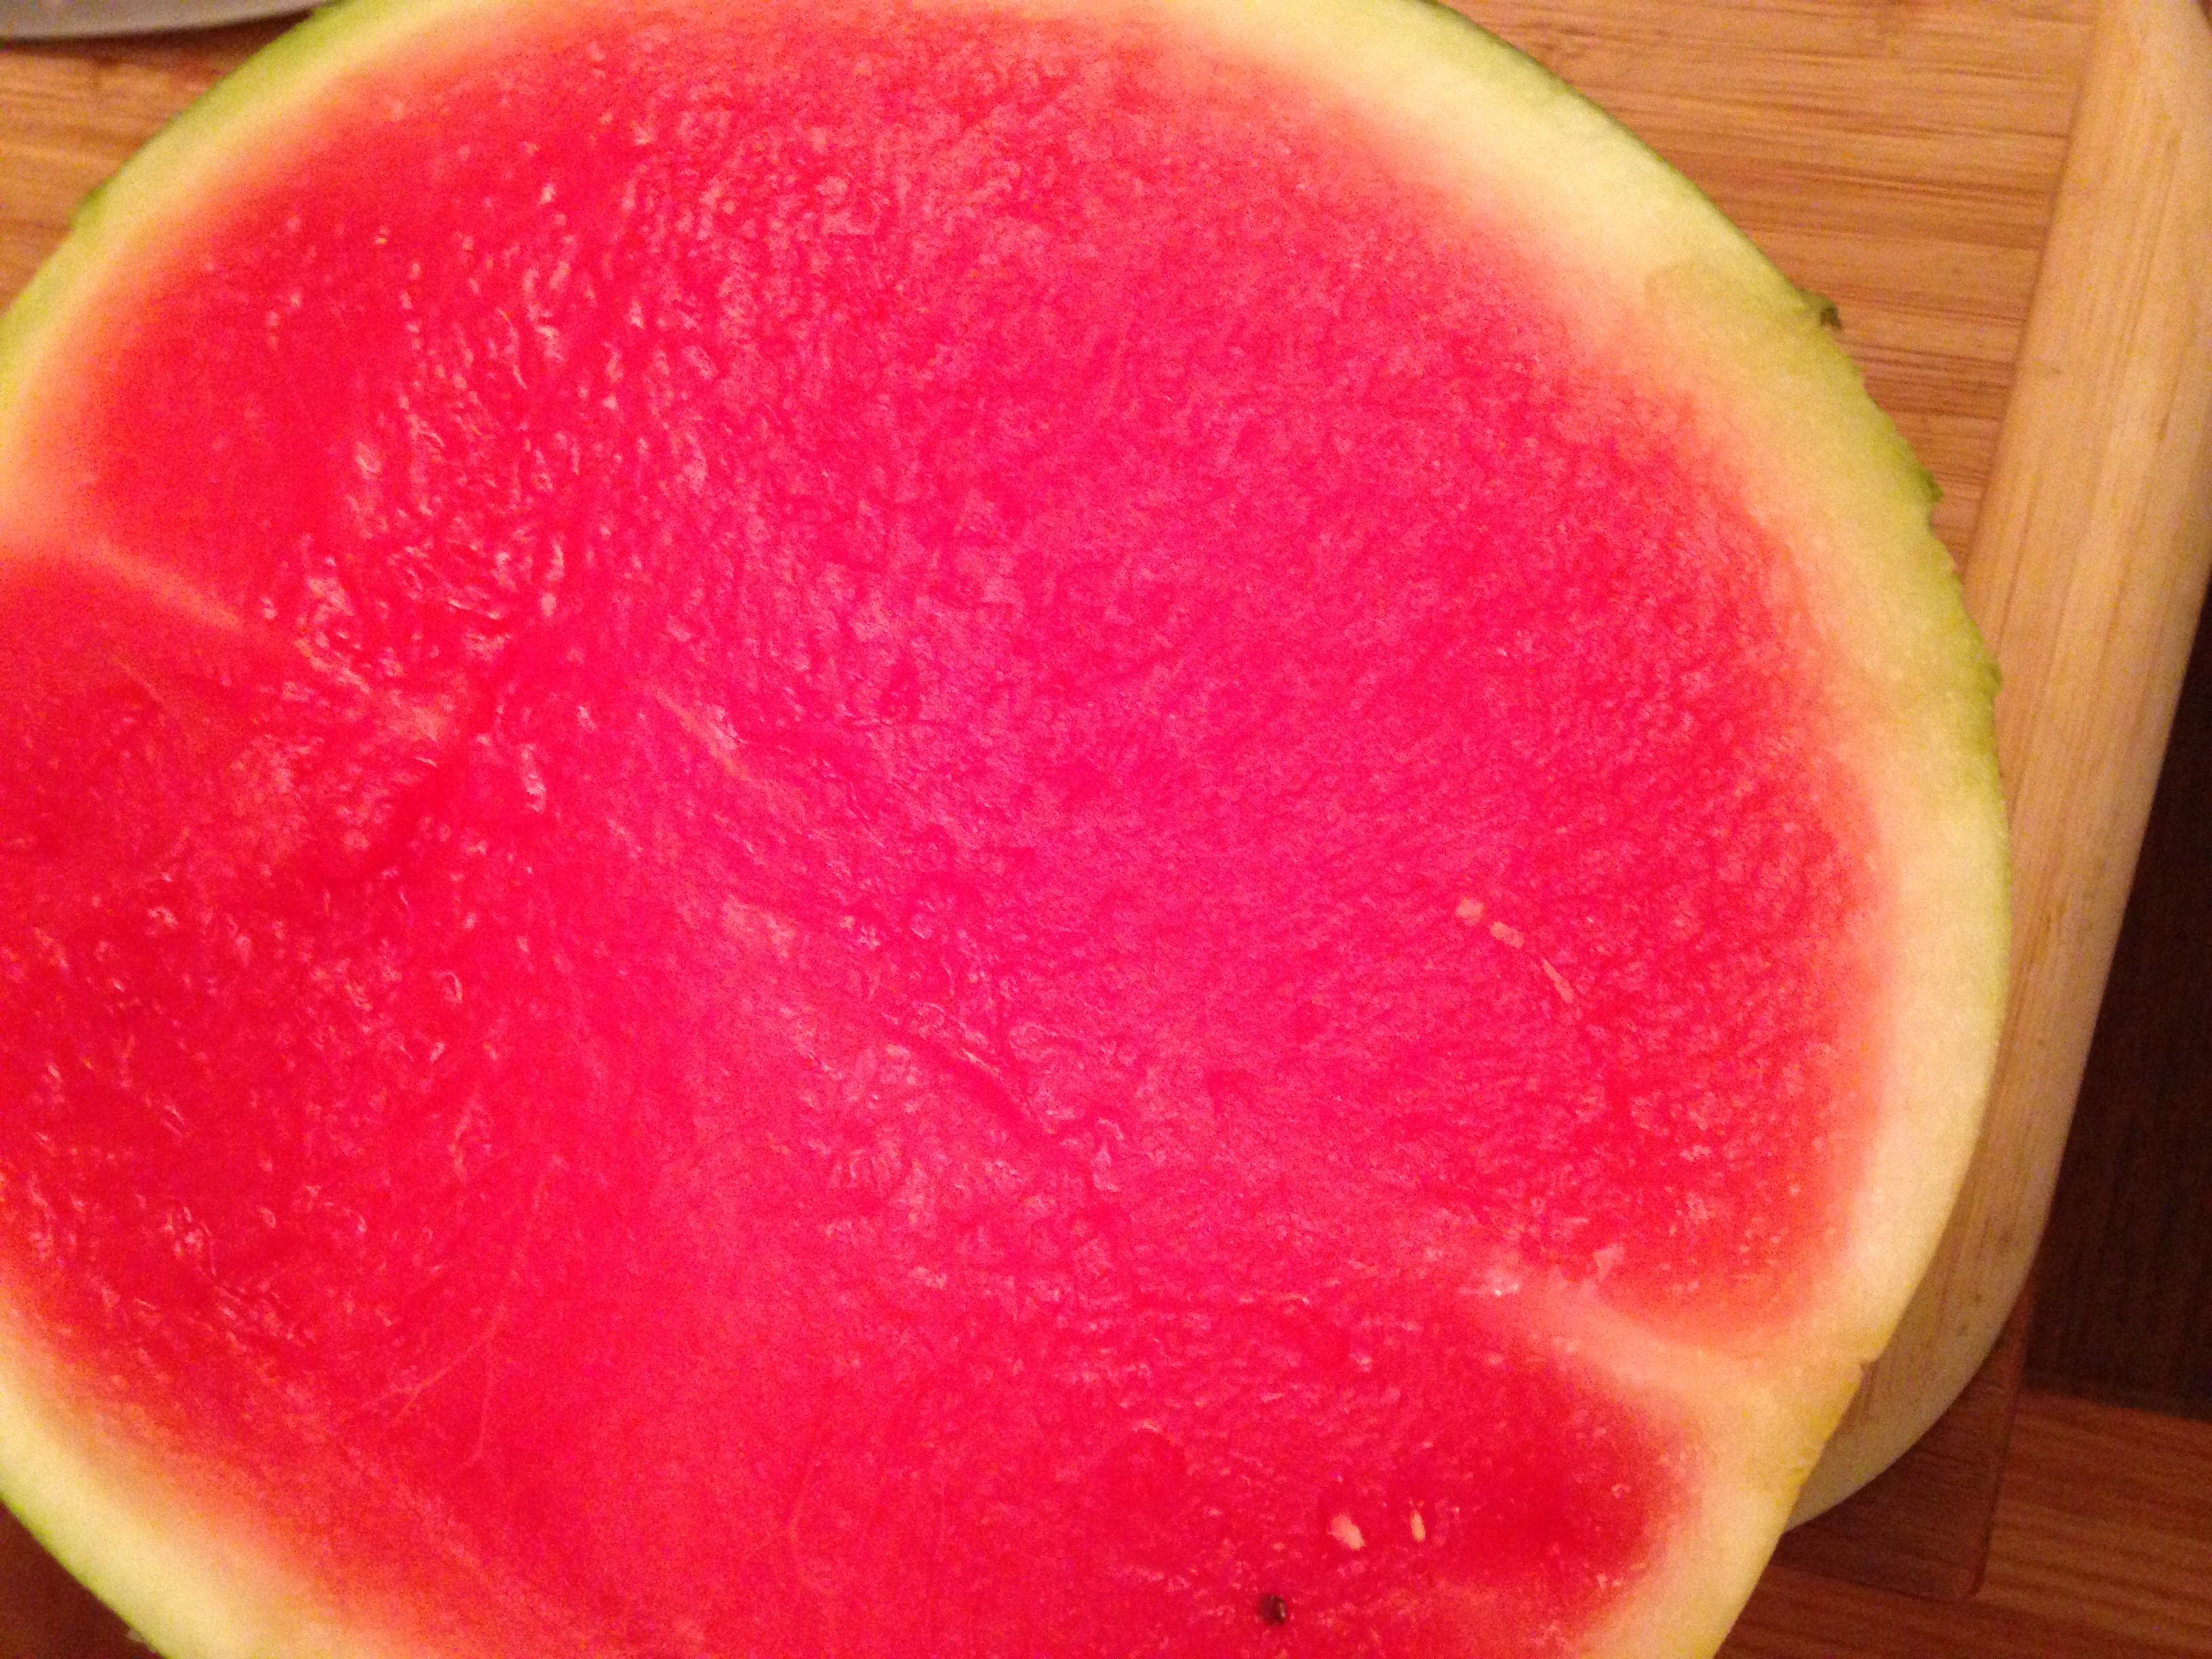 The most delicious watermelon I have ever had